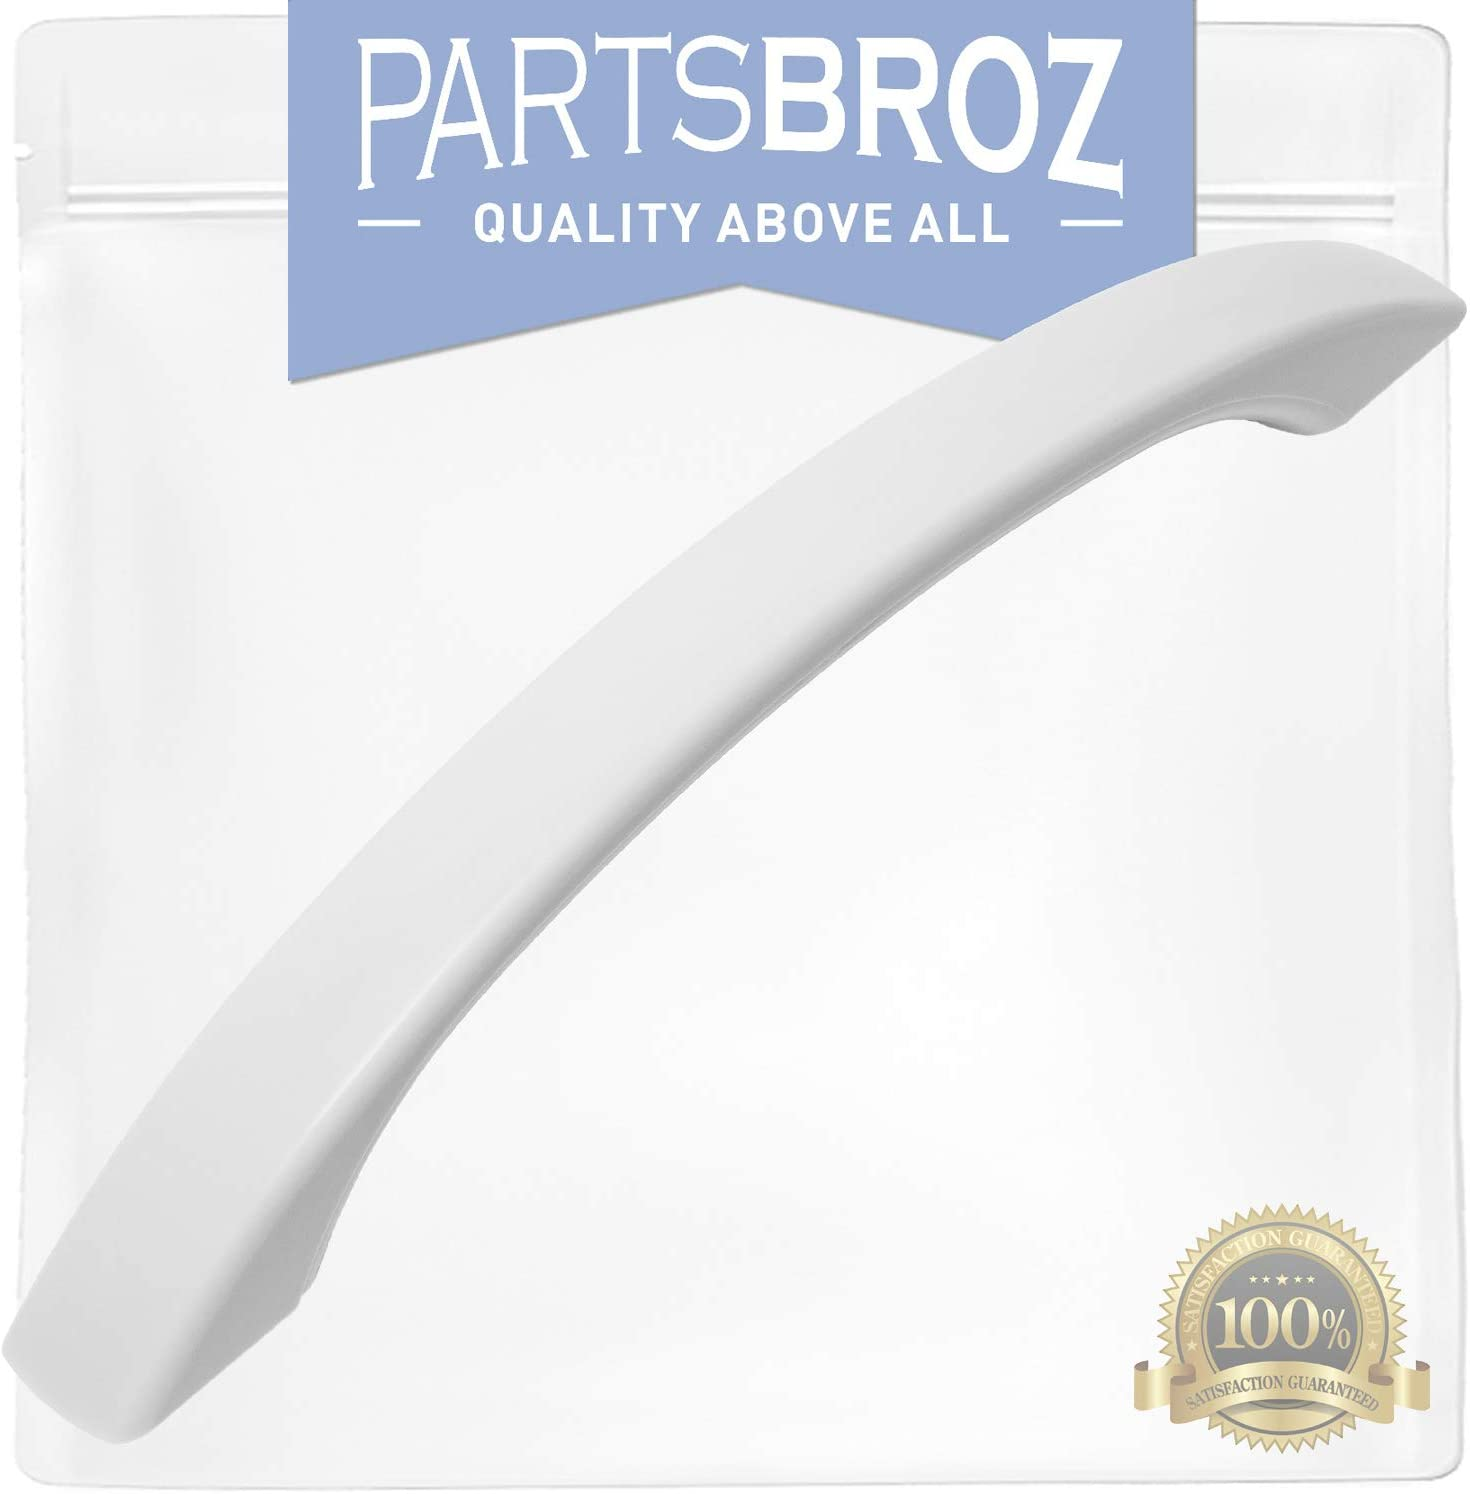 WB15X10023 White Door Handle for GE Microwaves by PartsBroz - Replaces Part Numbers AP2021174, 769529, AH232103, EA232103, PS232103, WB15X10084